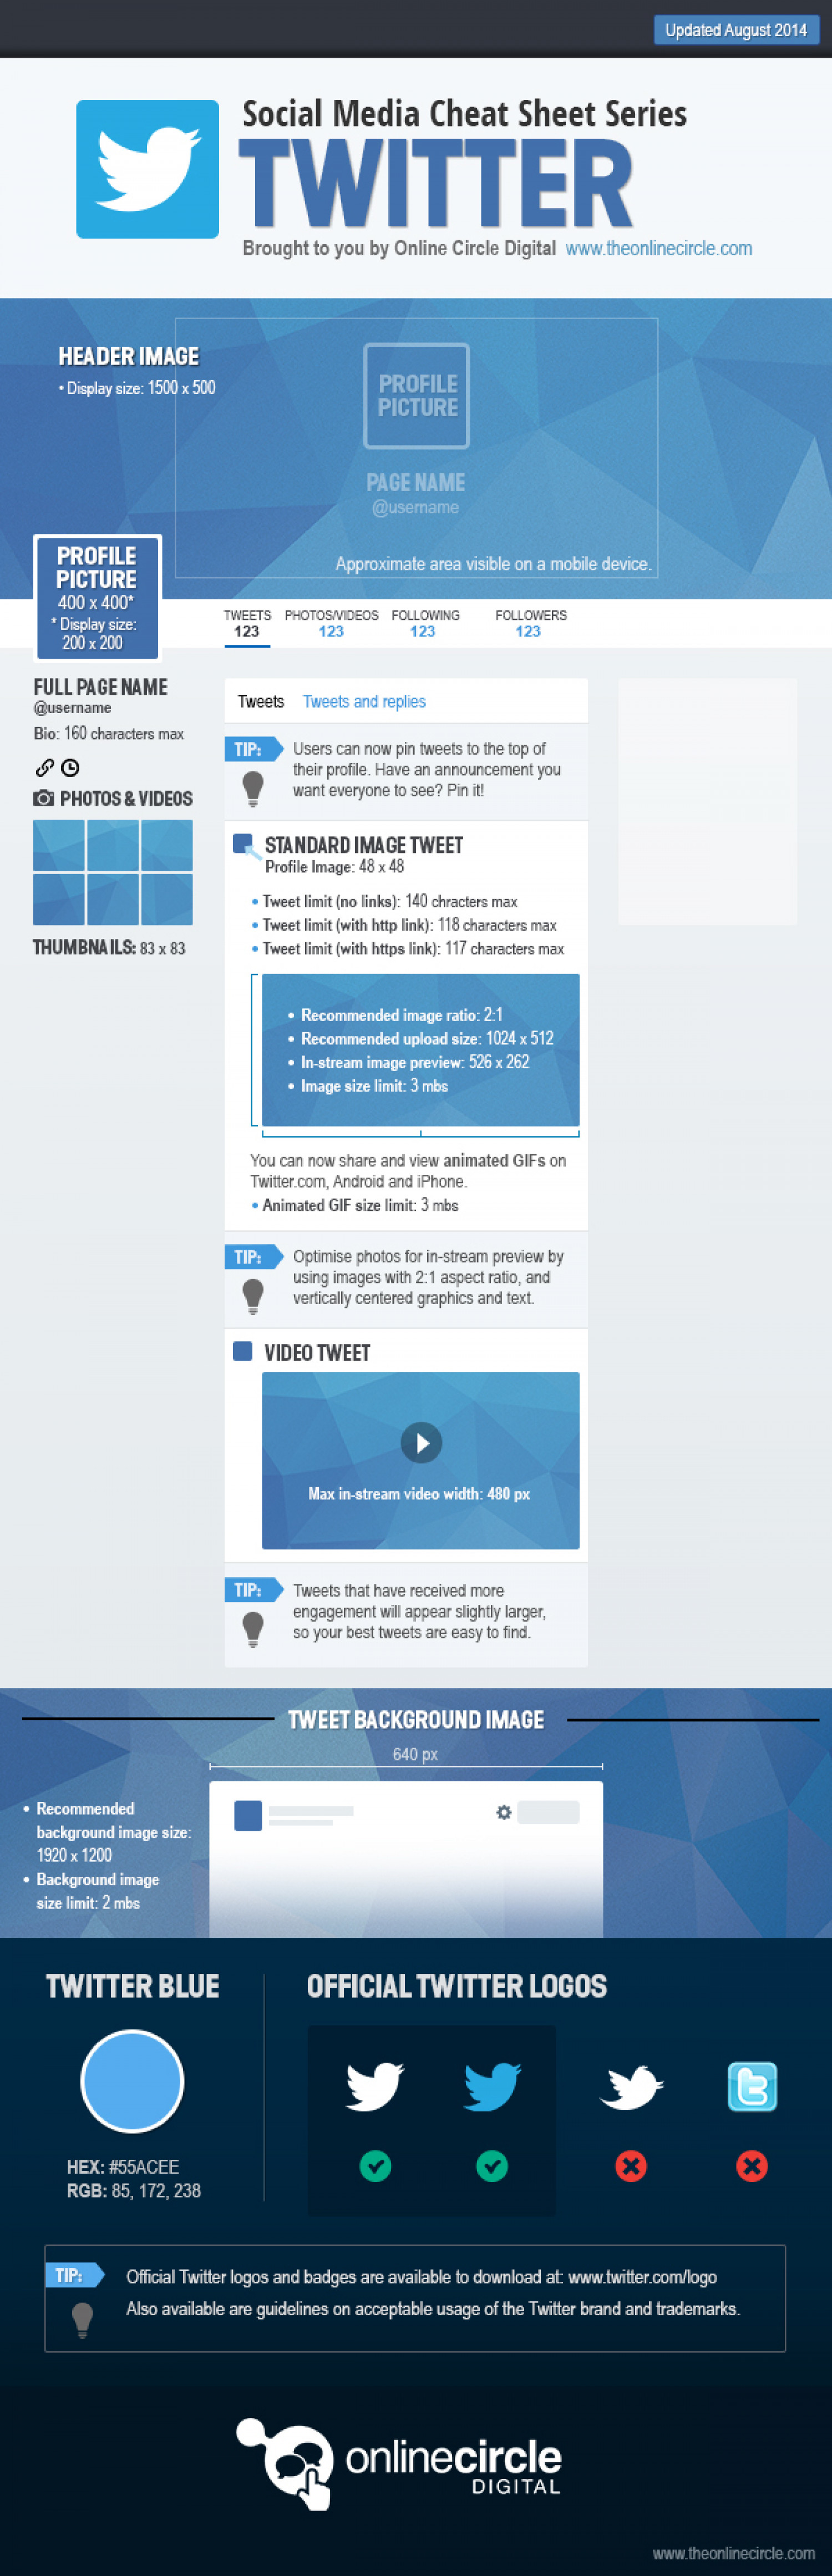 Twitter Sizes and Dimensions Cheat Sheet 2014 - Online Circle Digital  Infographic